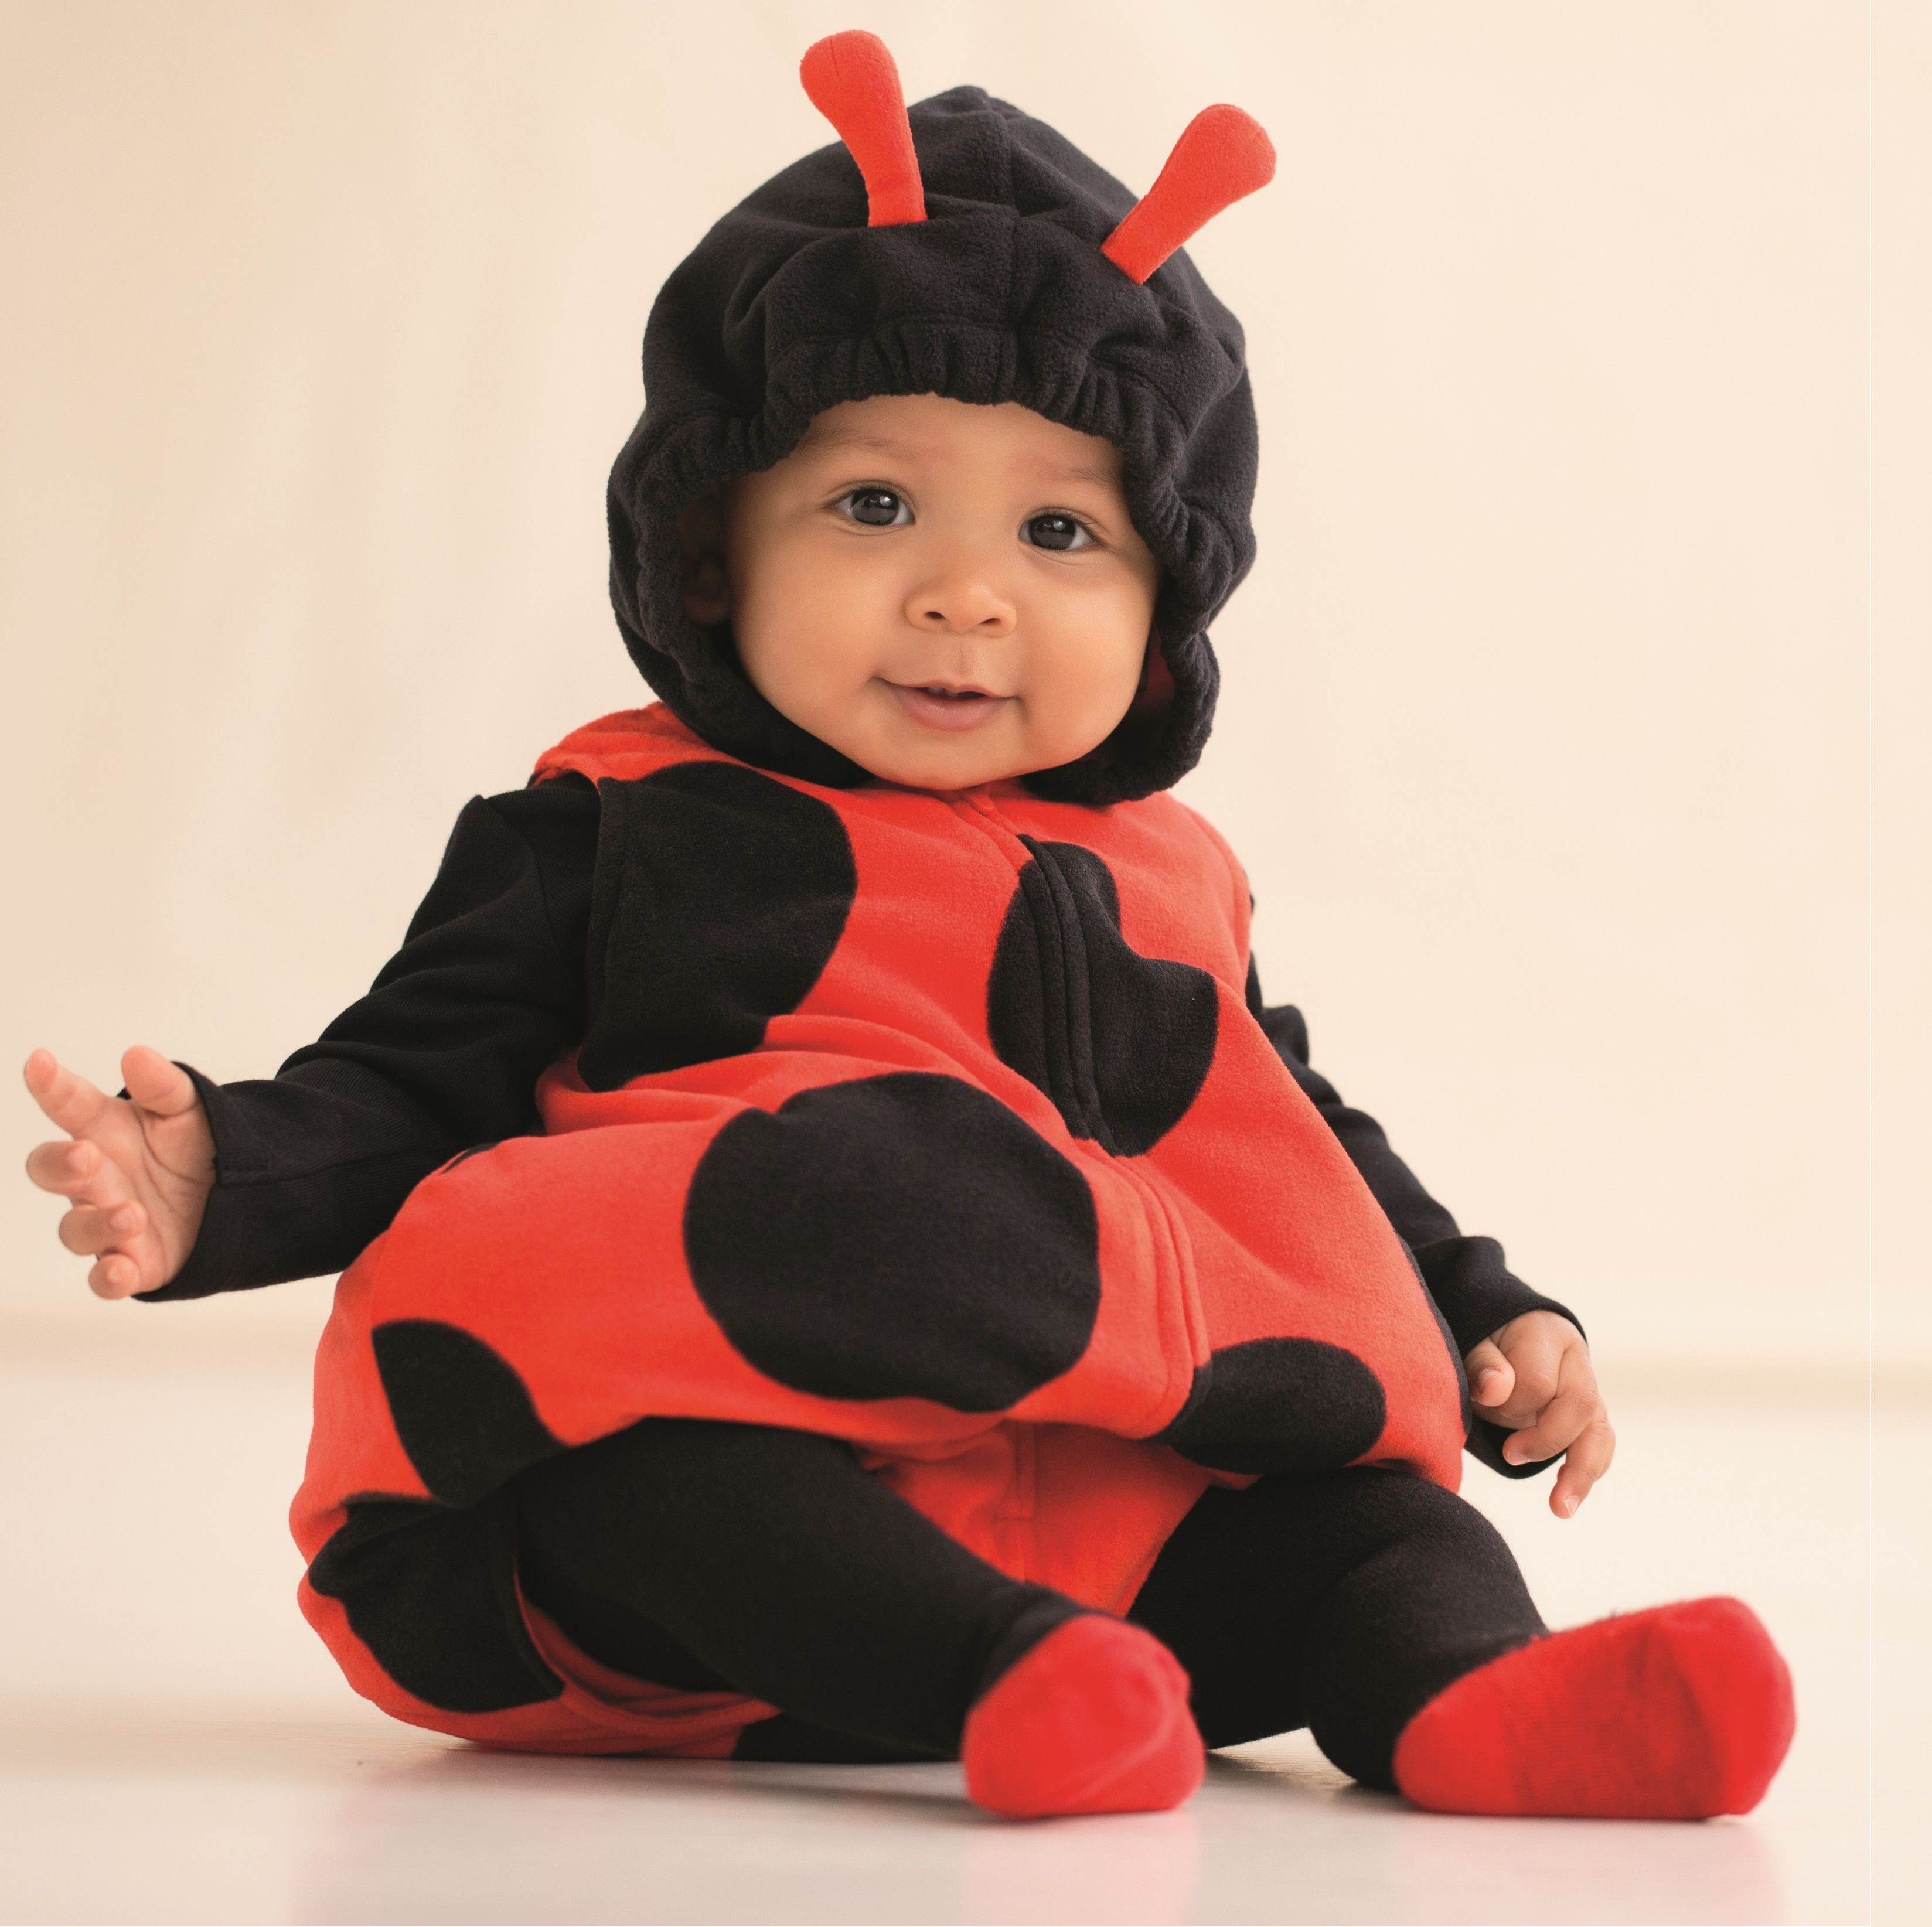 such a cute little ladybug. baby girl will look precious in this